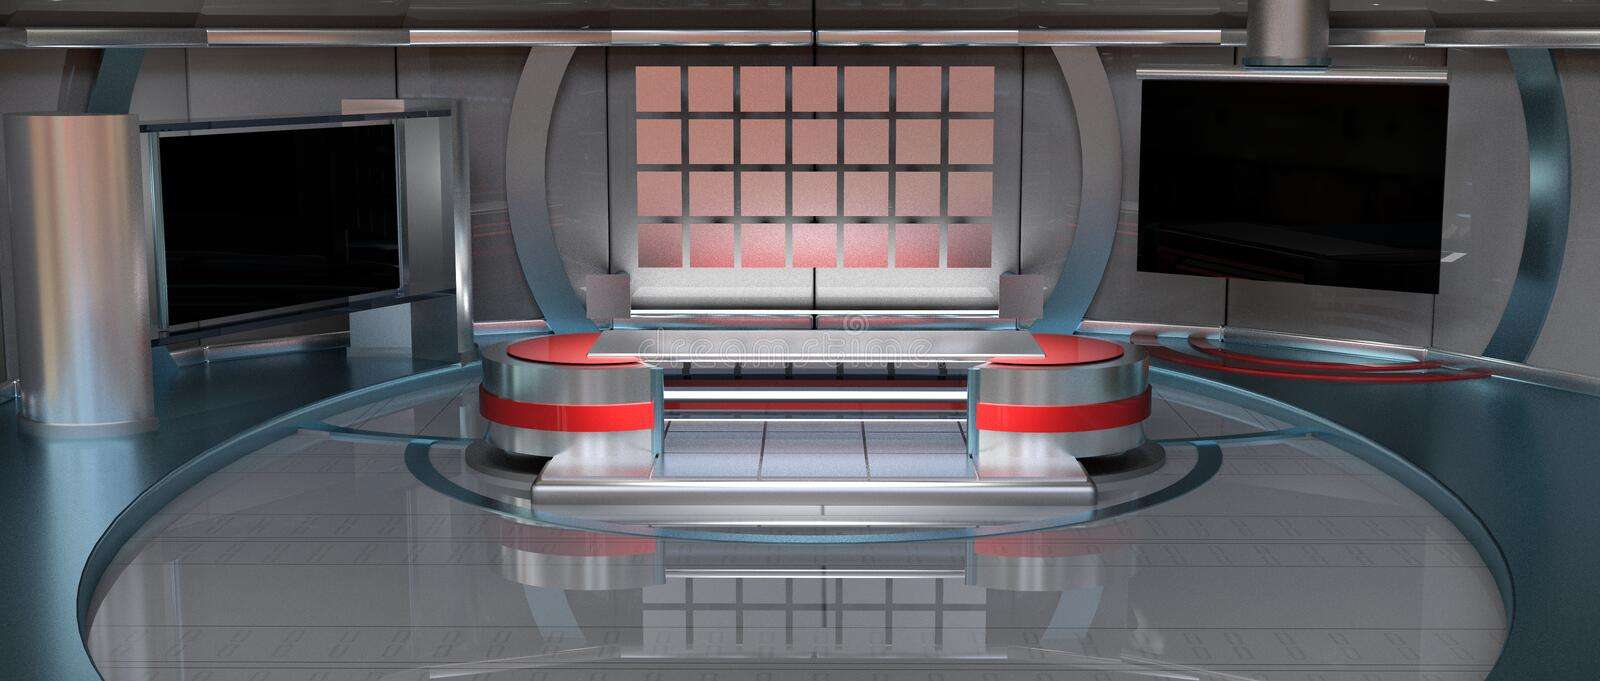 News Virtual Set wide angle. CGI 3D rendered news Virtual Set in metallic red, wide angle view royalty free illustration